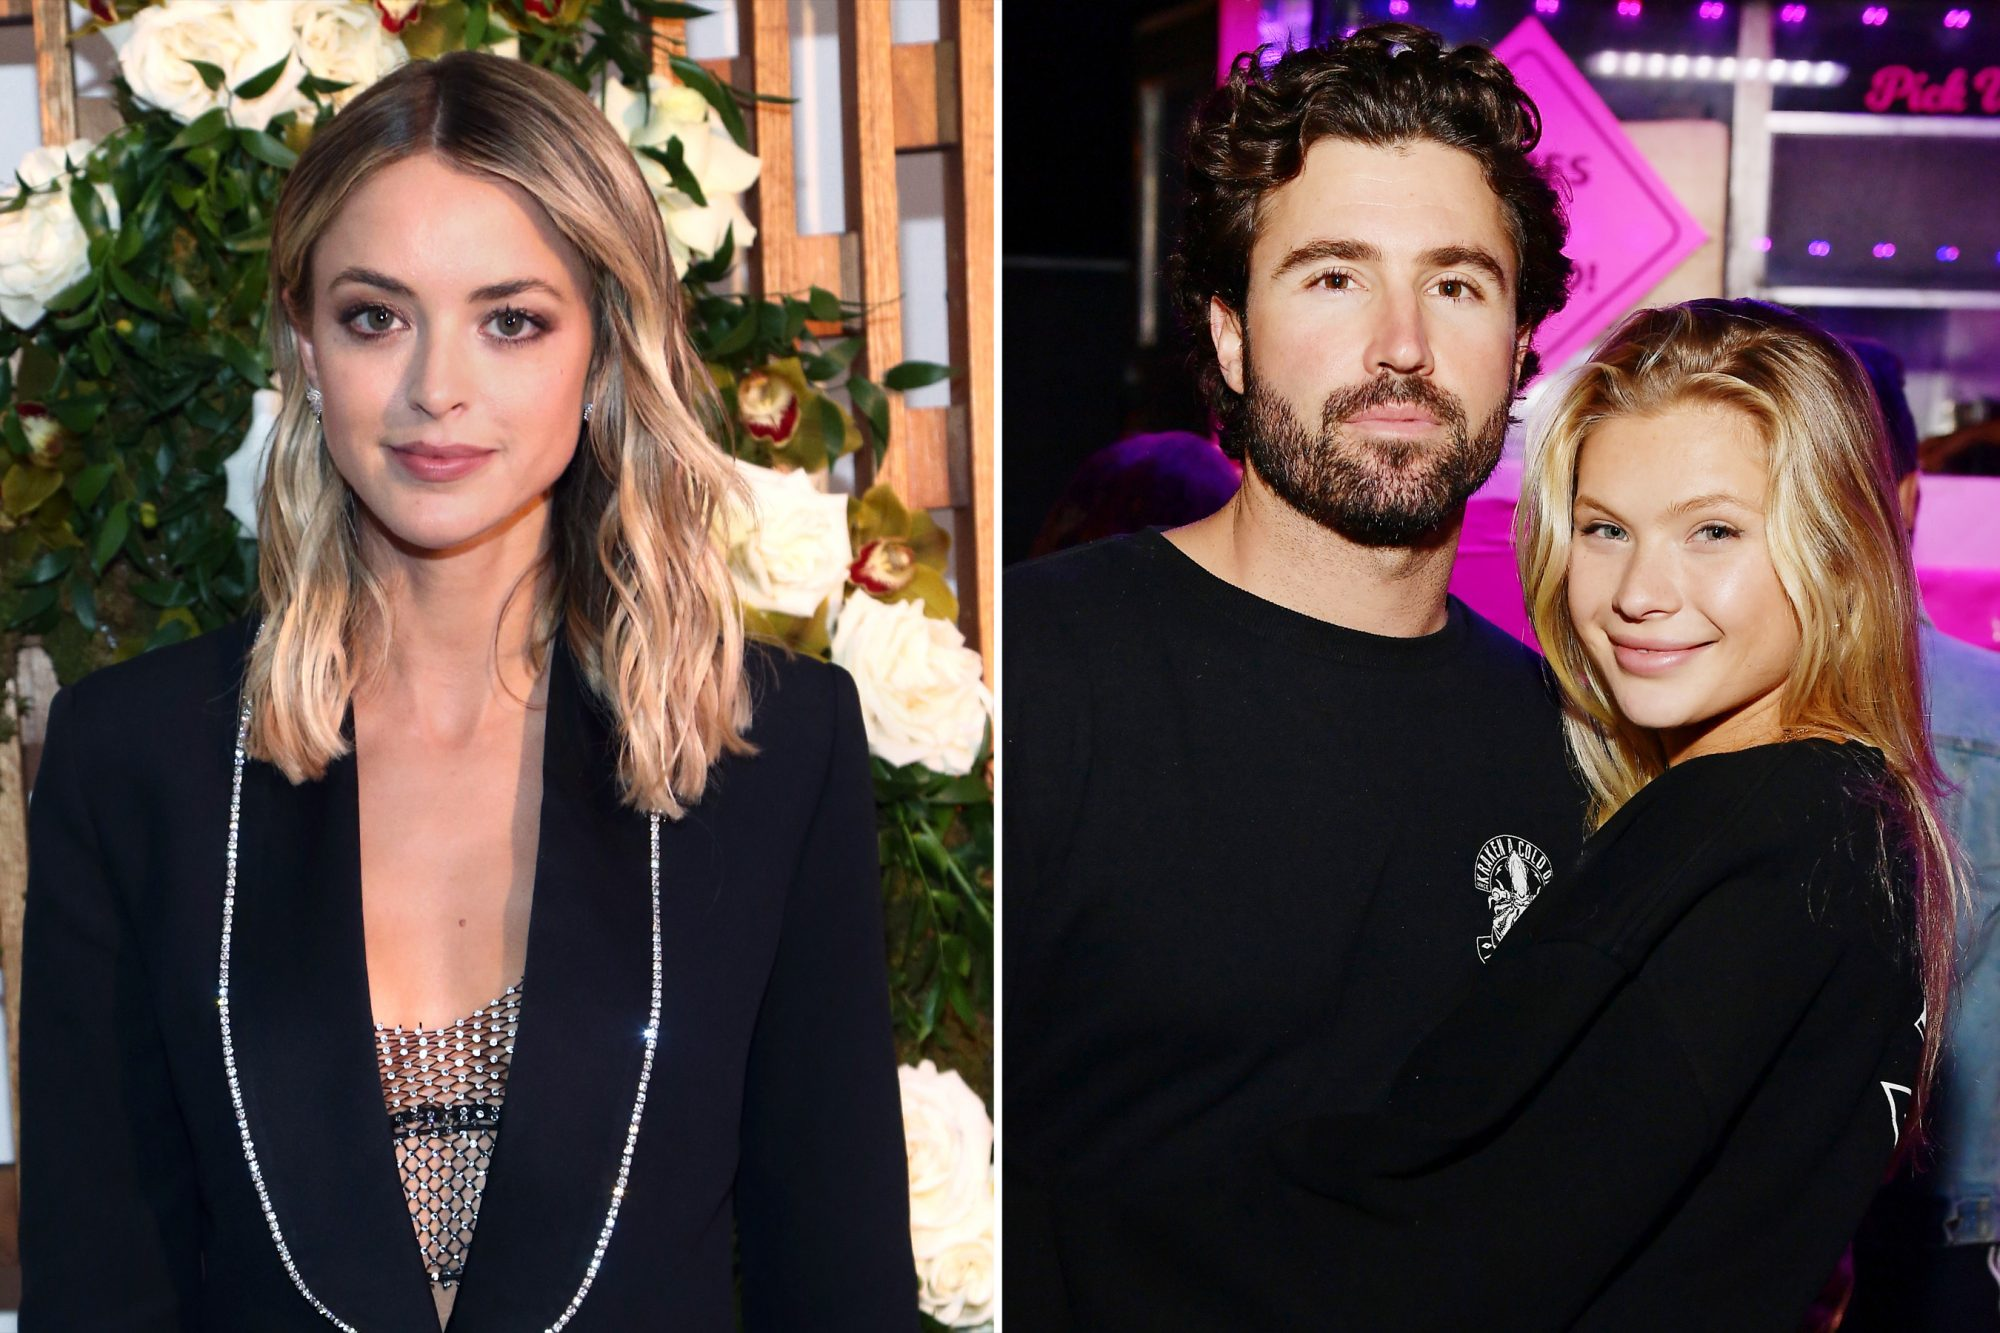 Kaitlynn Carter, Josie Canseco, Brody Jenner